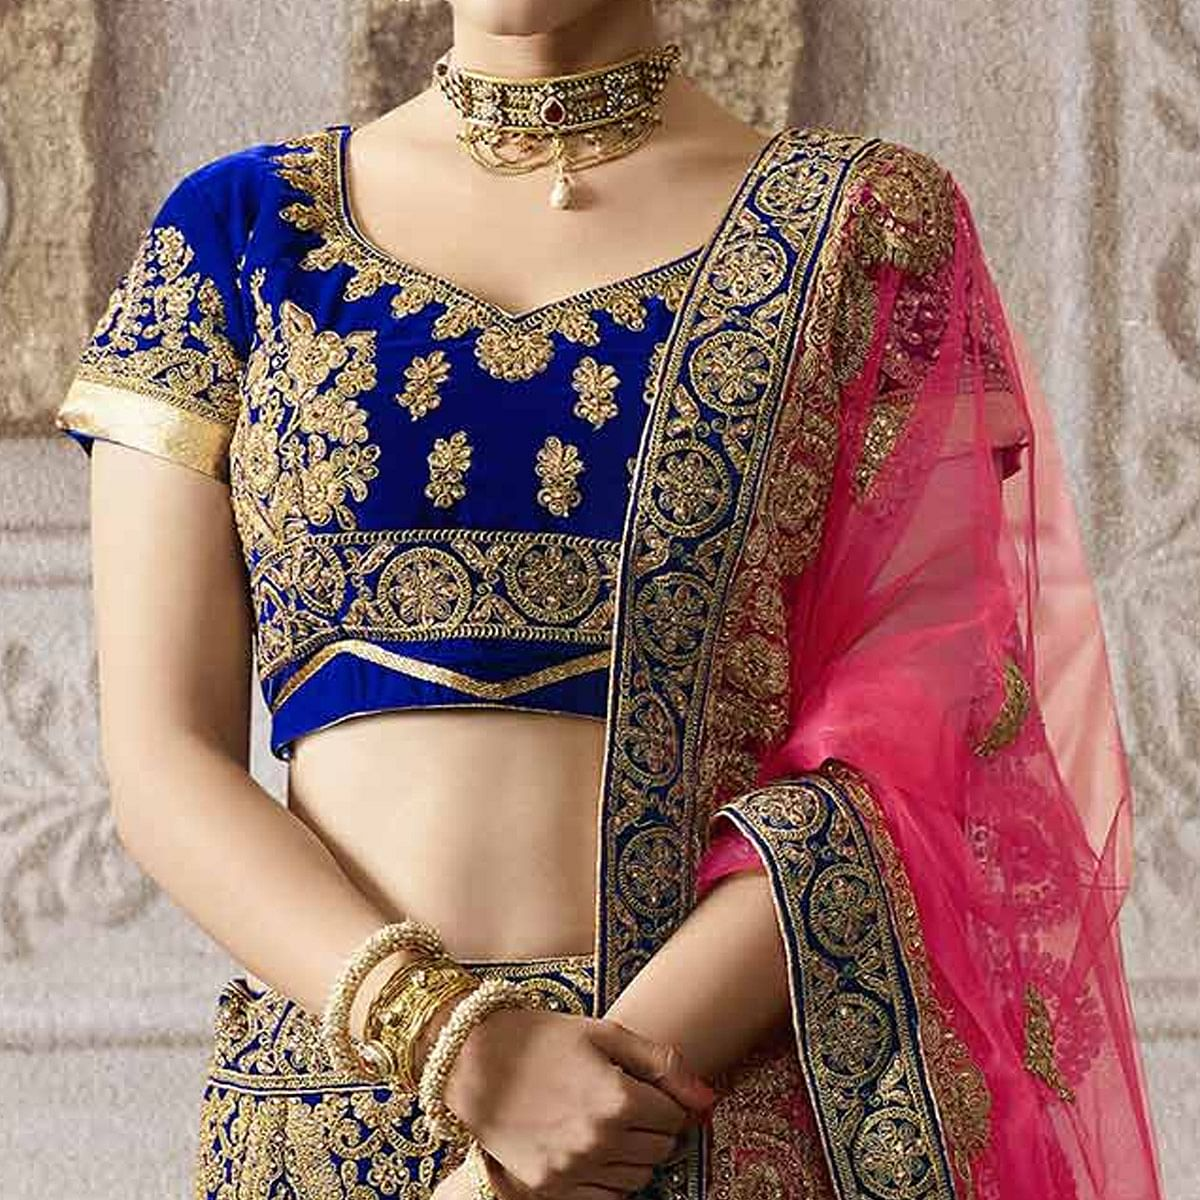 Prominent Royal Blue Colored Wedding Wear Embroidered Velvet Lehenga Choli